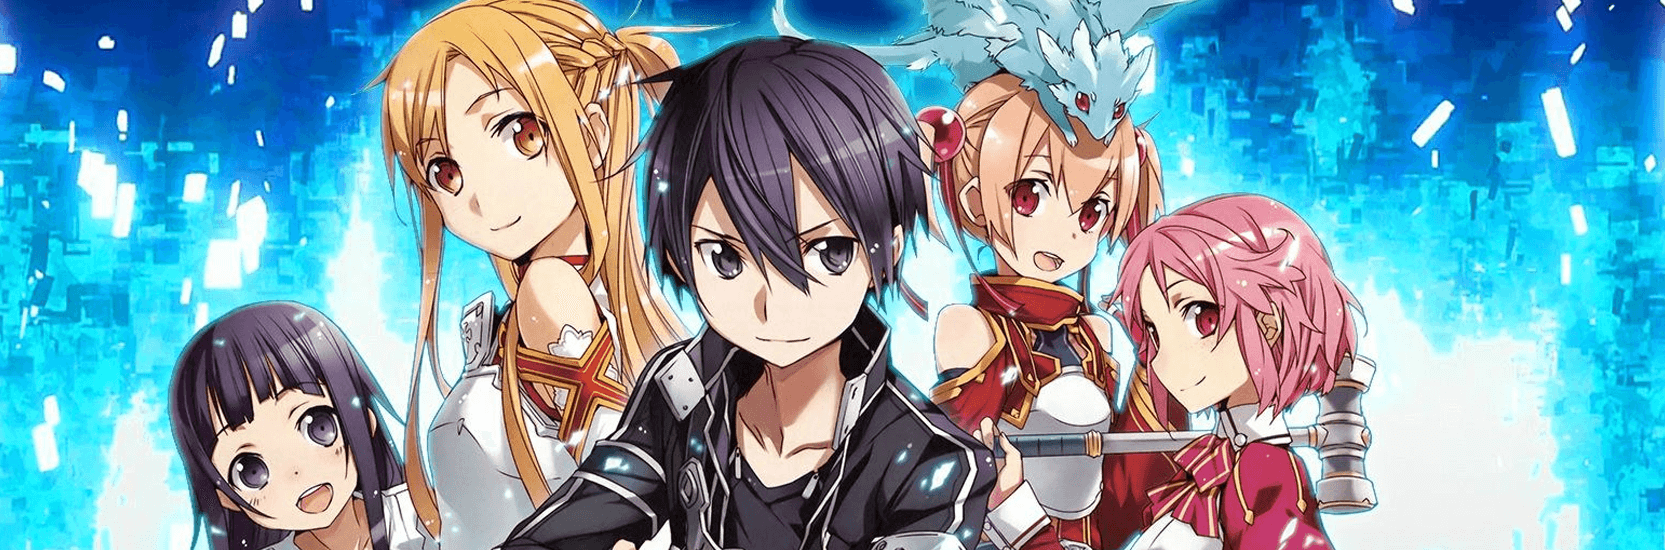 Sword Art Online – Alicization sur Wakanim !